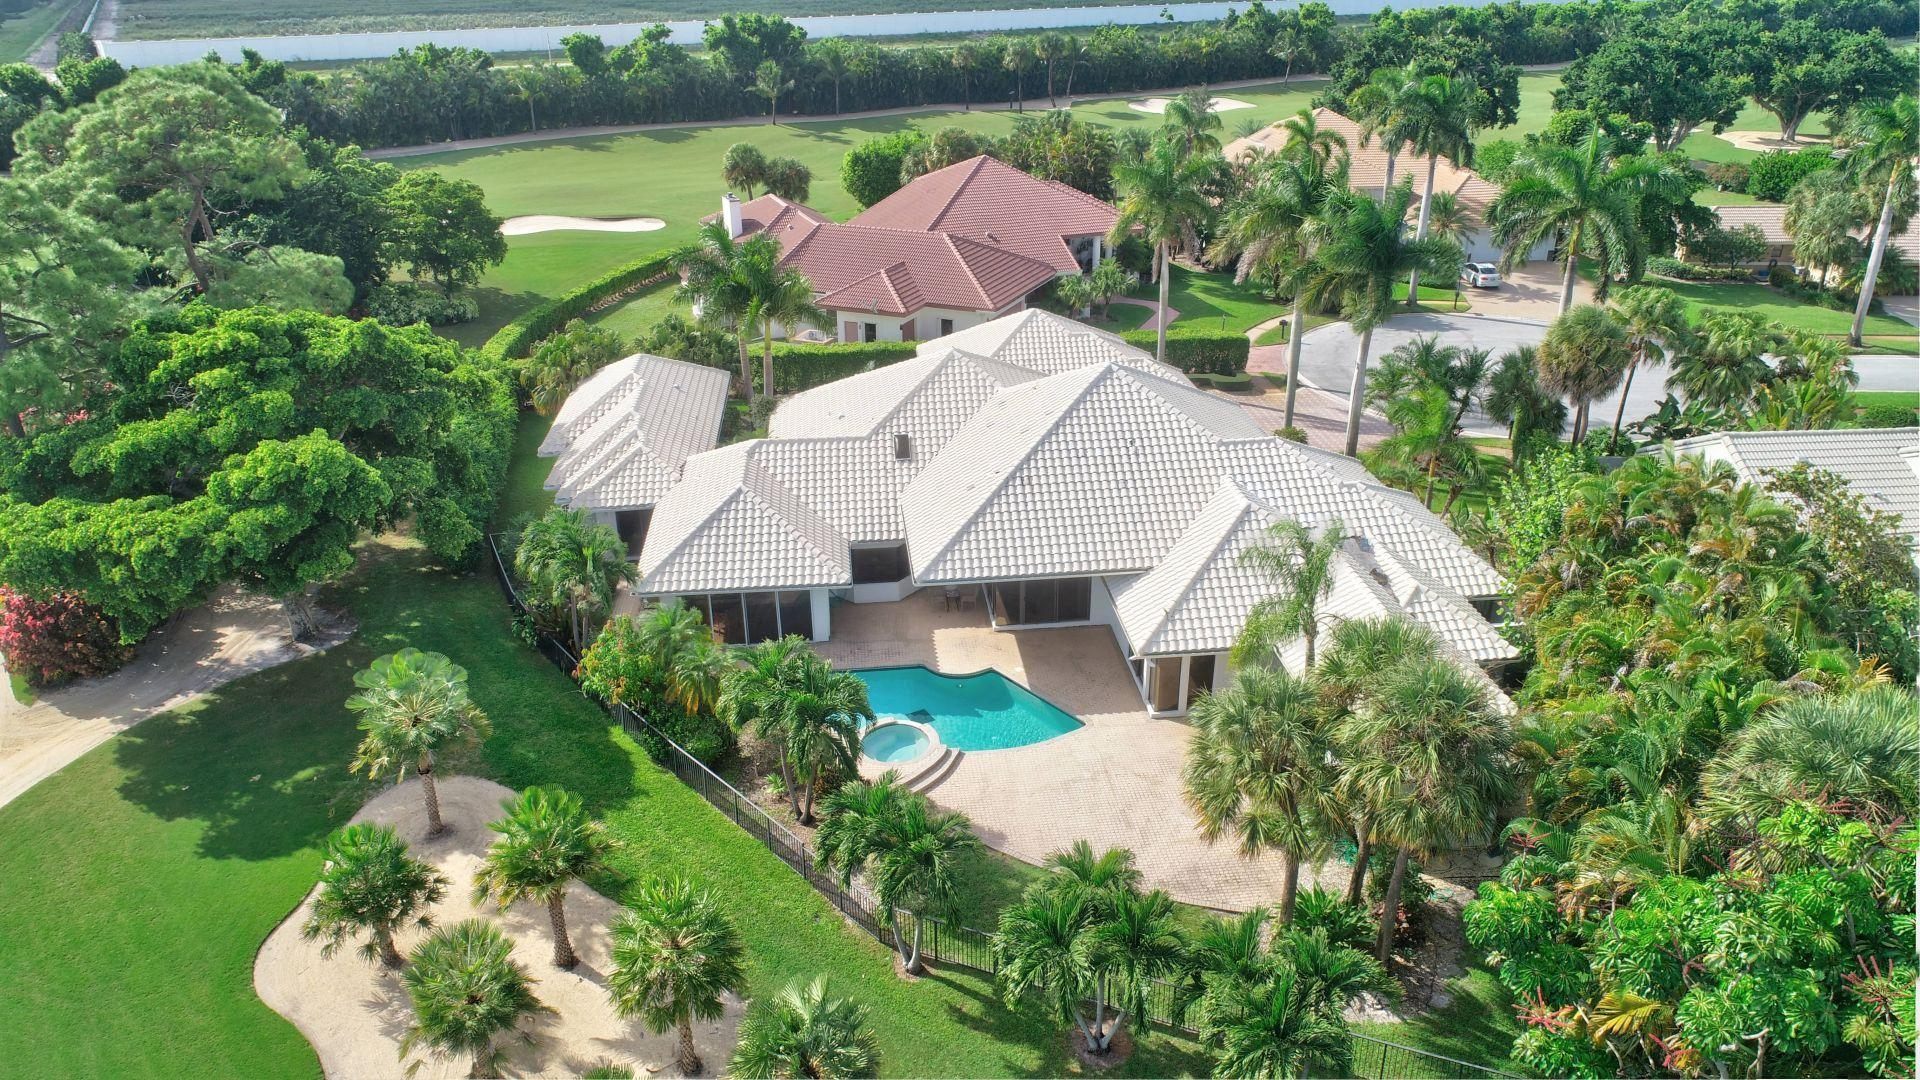 Boca Raton: St. Andrews - listed at 1,095,000 (7938 Wellwynd Wy)